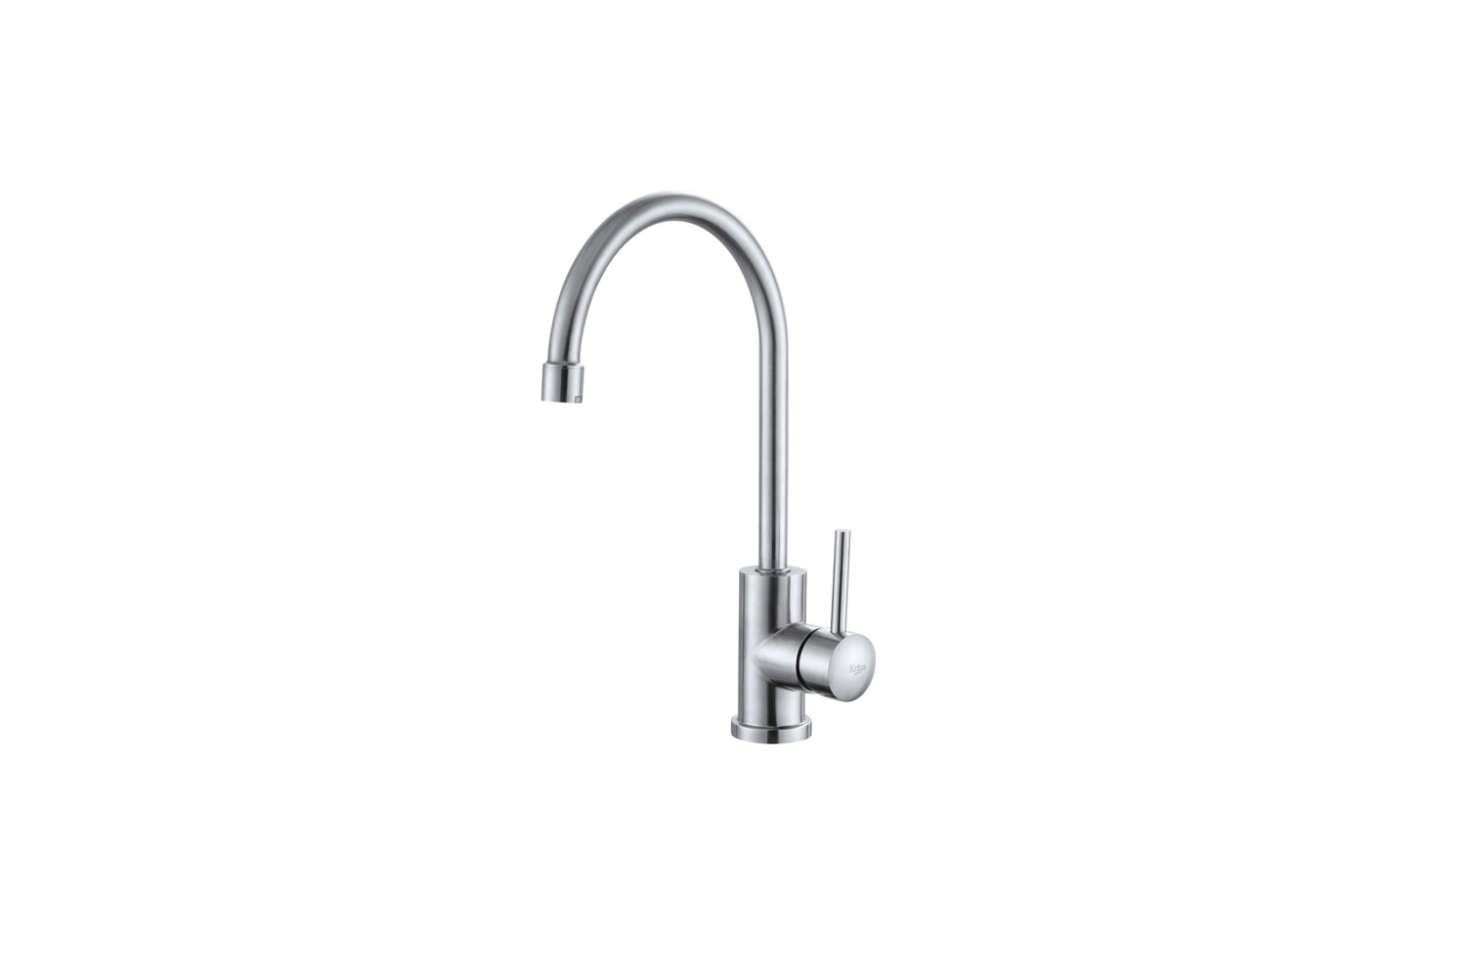 10 Easy Pieces: Faucets for Outdoor Sinks - Gardenista